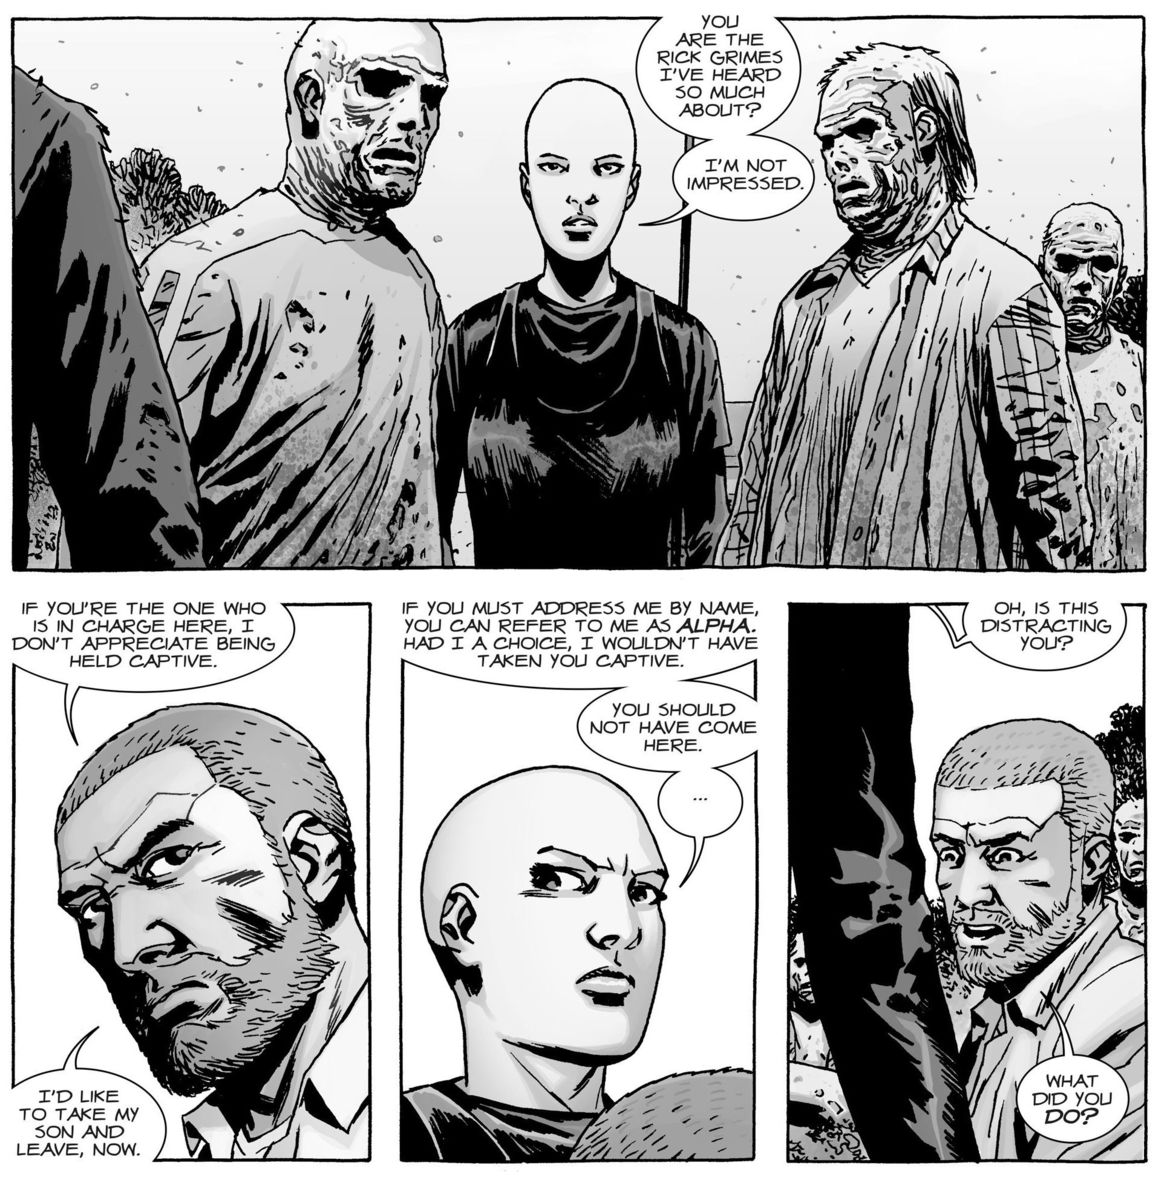 The Walking Dead issue 143 screen grab